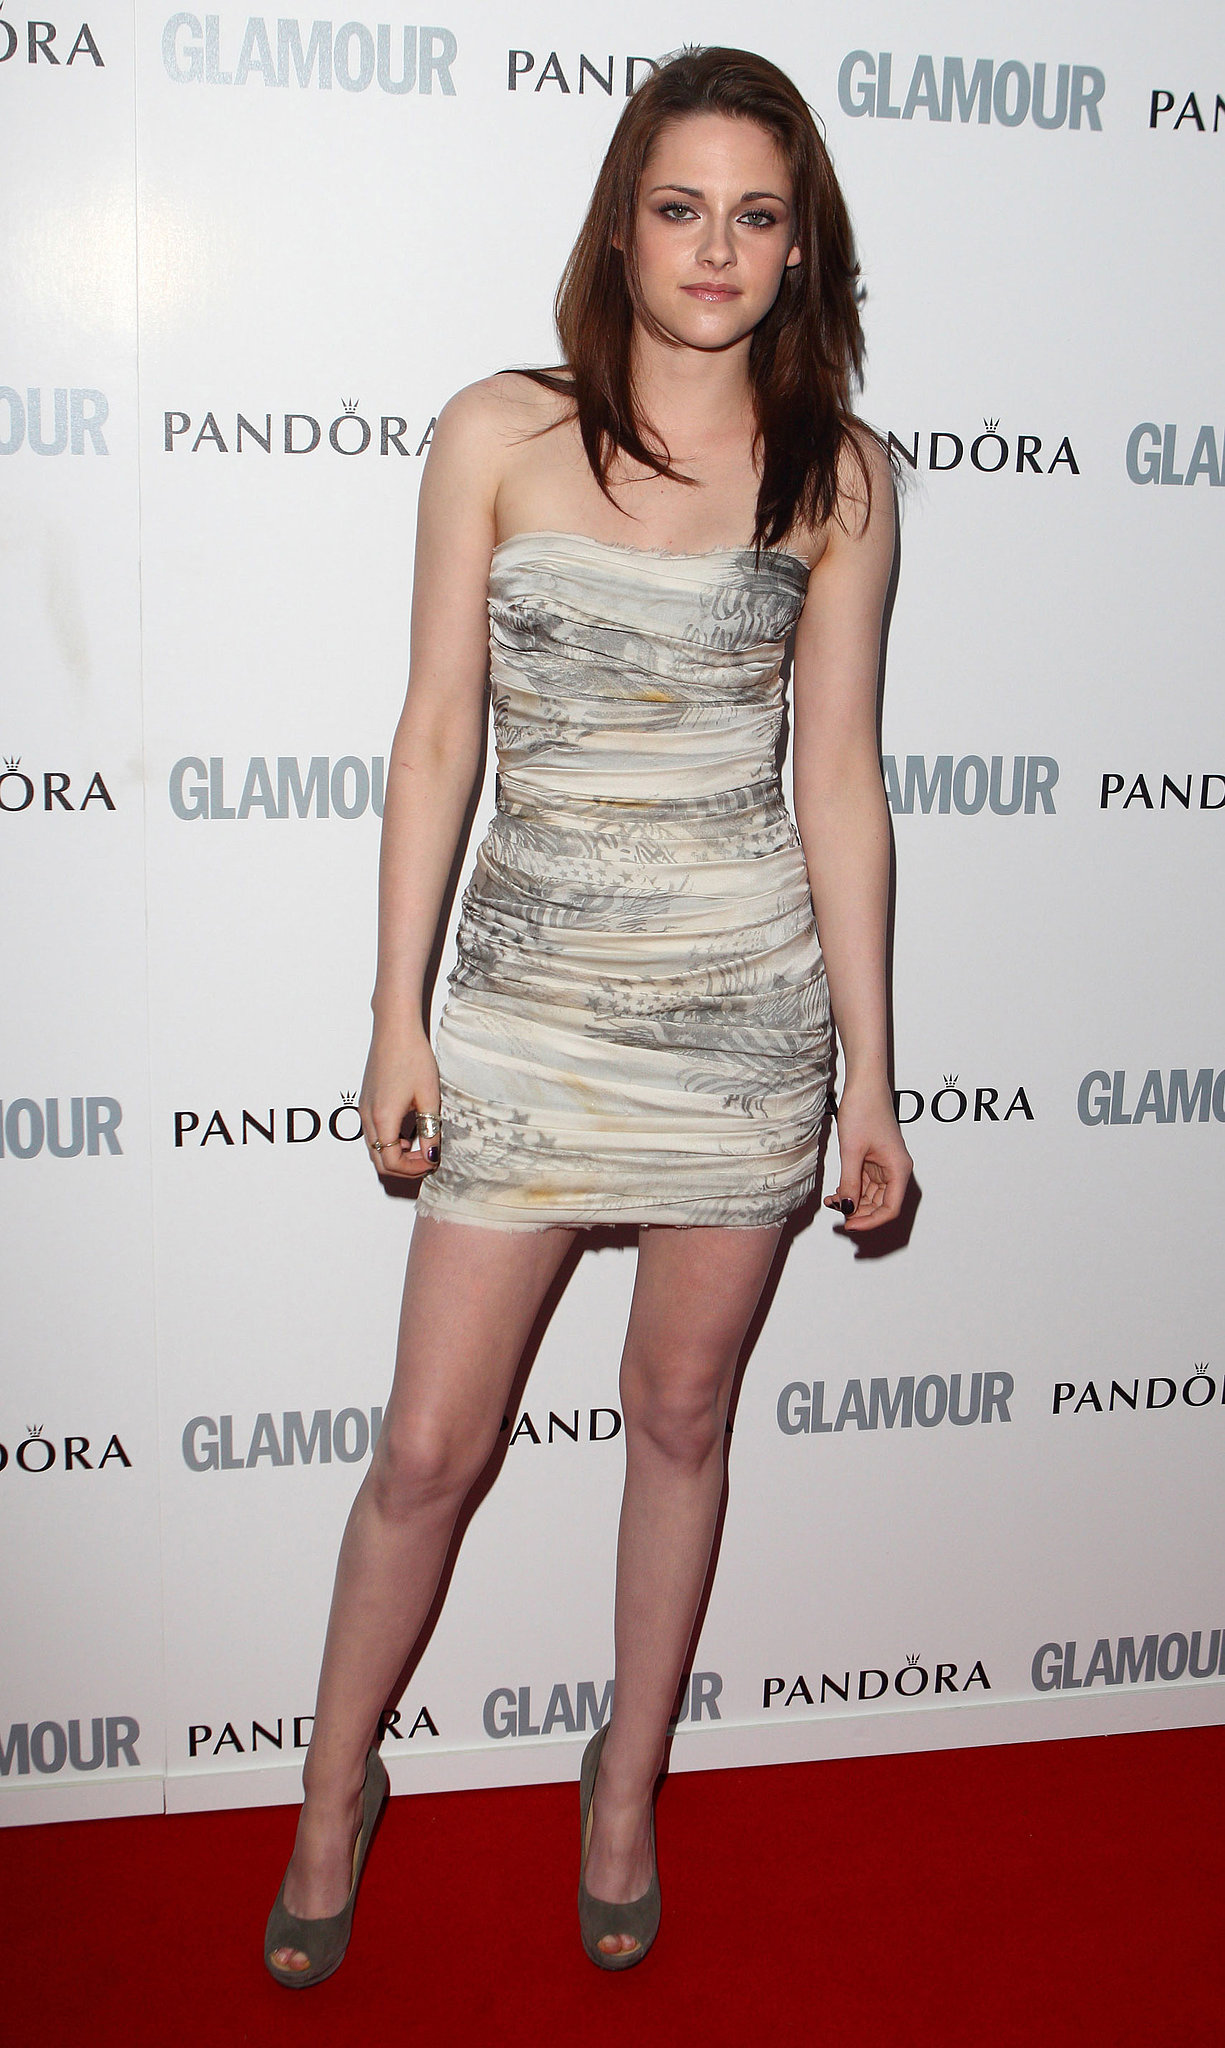 Stewart hit the red carpet in a ruched strapless Balmain and suede Giuseppe Zanotti peep-toe pumps for Glamour's Women of the Year Awards in 2011.